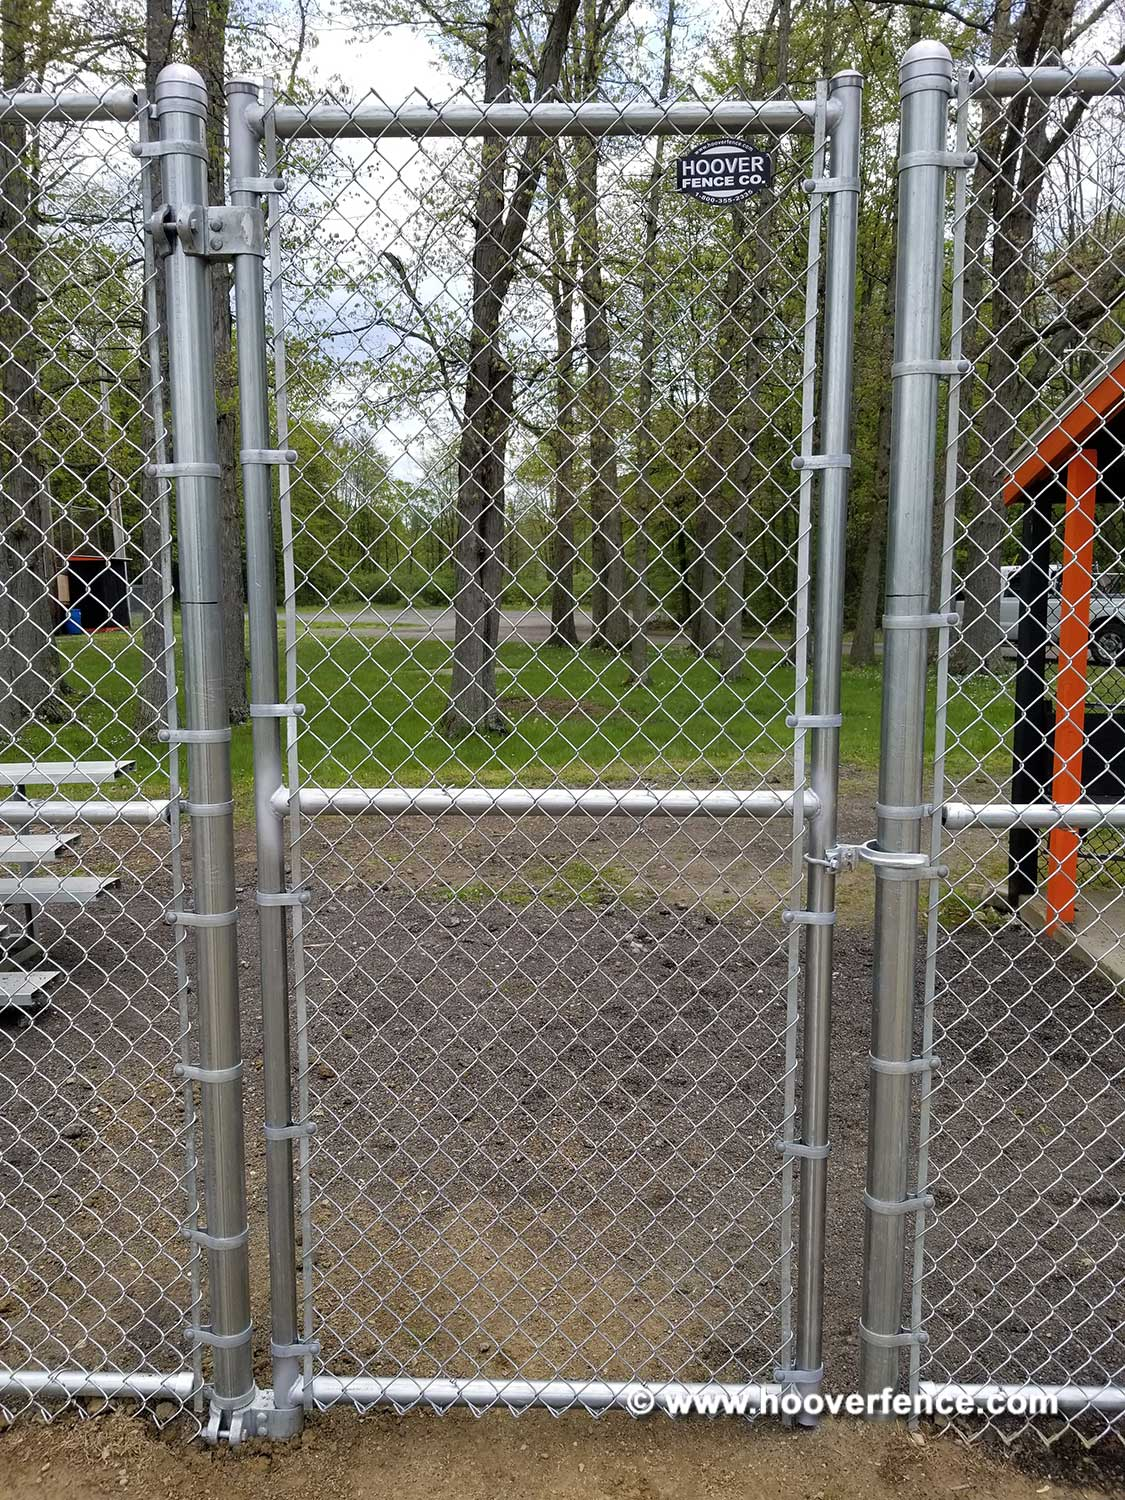 Hoover Fence Co Installation BS-F37 Baseball Sideline Fence - Field 3 - Newton Falls, OH